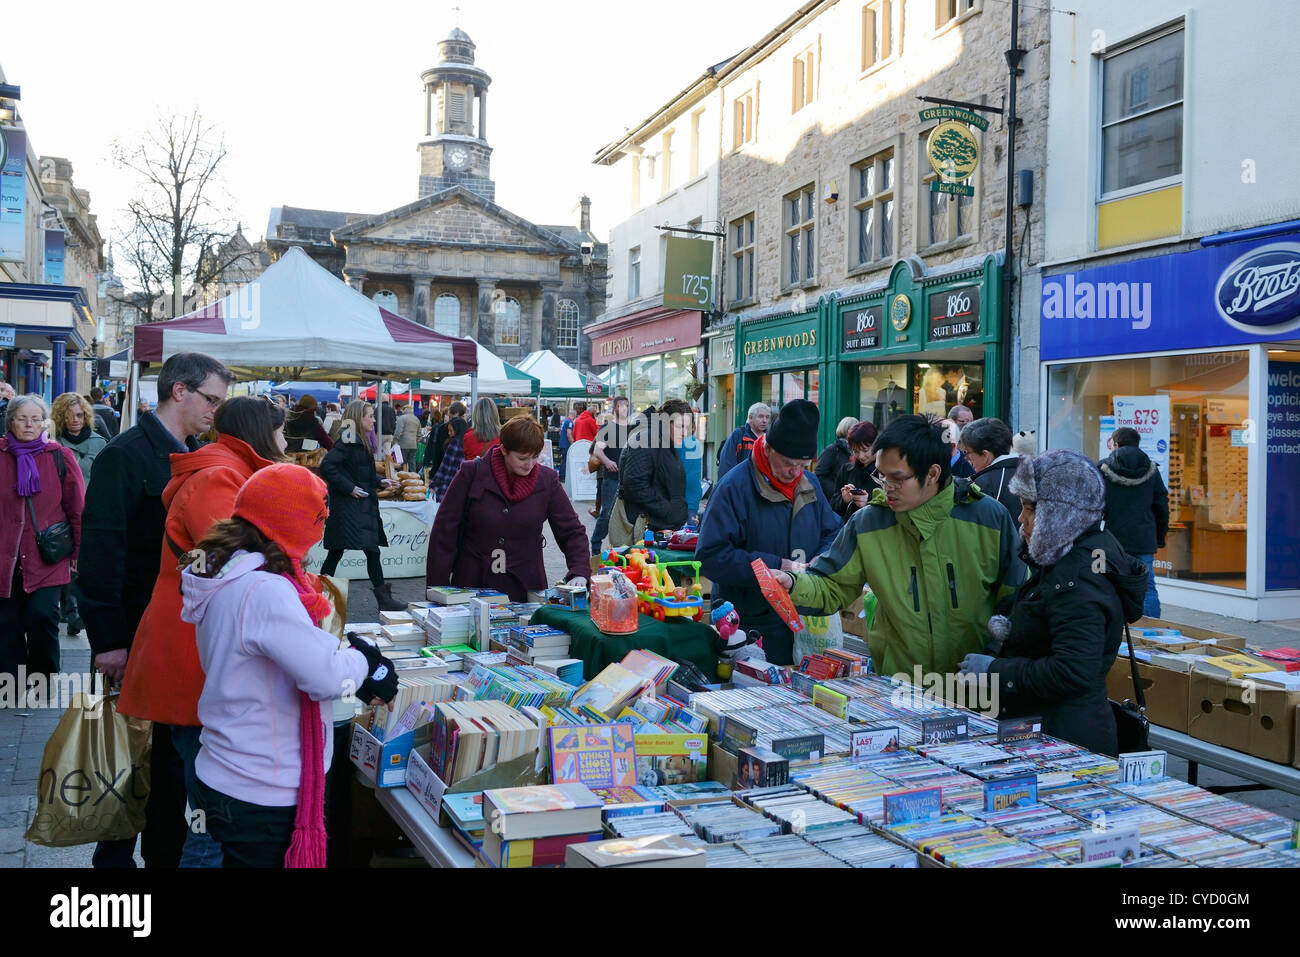 Shoppers at the saturday market in Market Street Lancaster UK - Stock Image